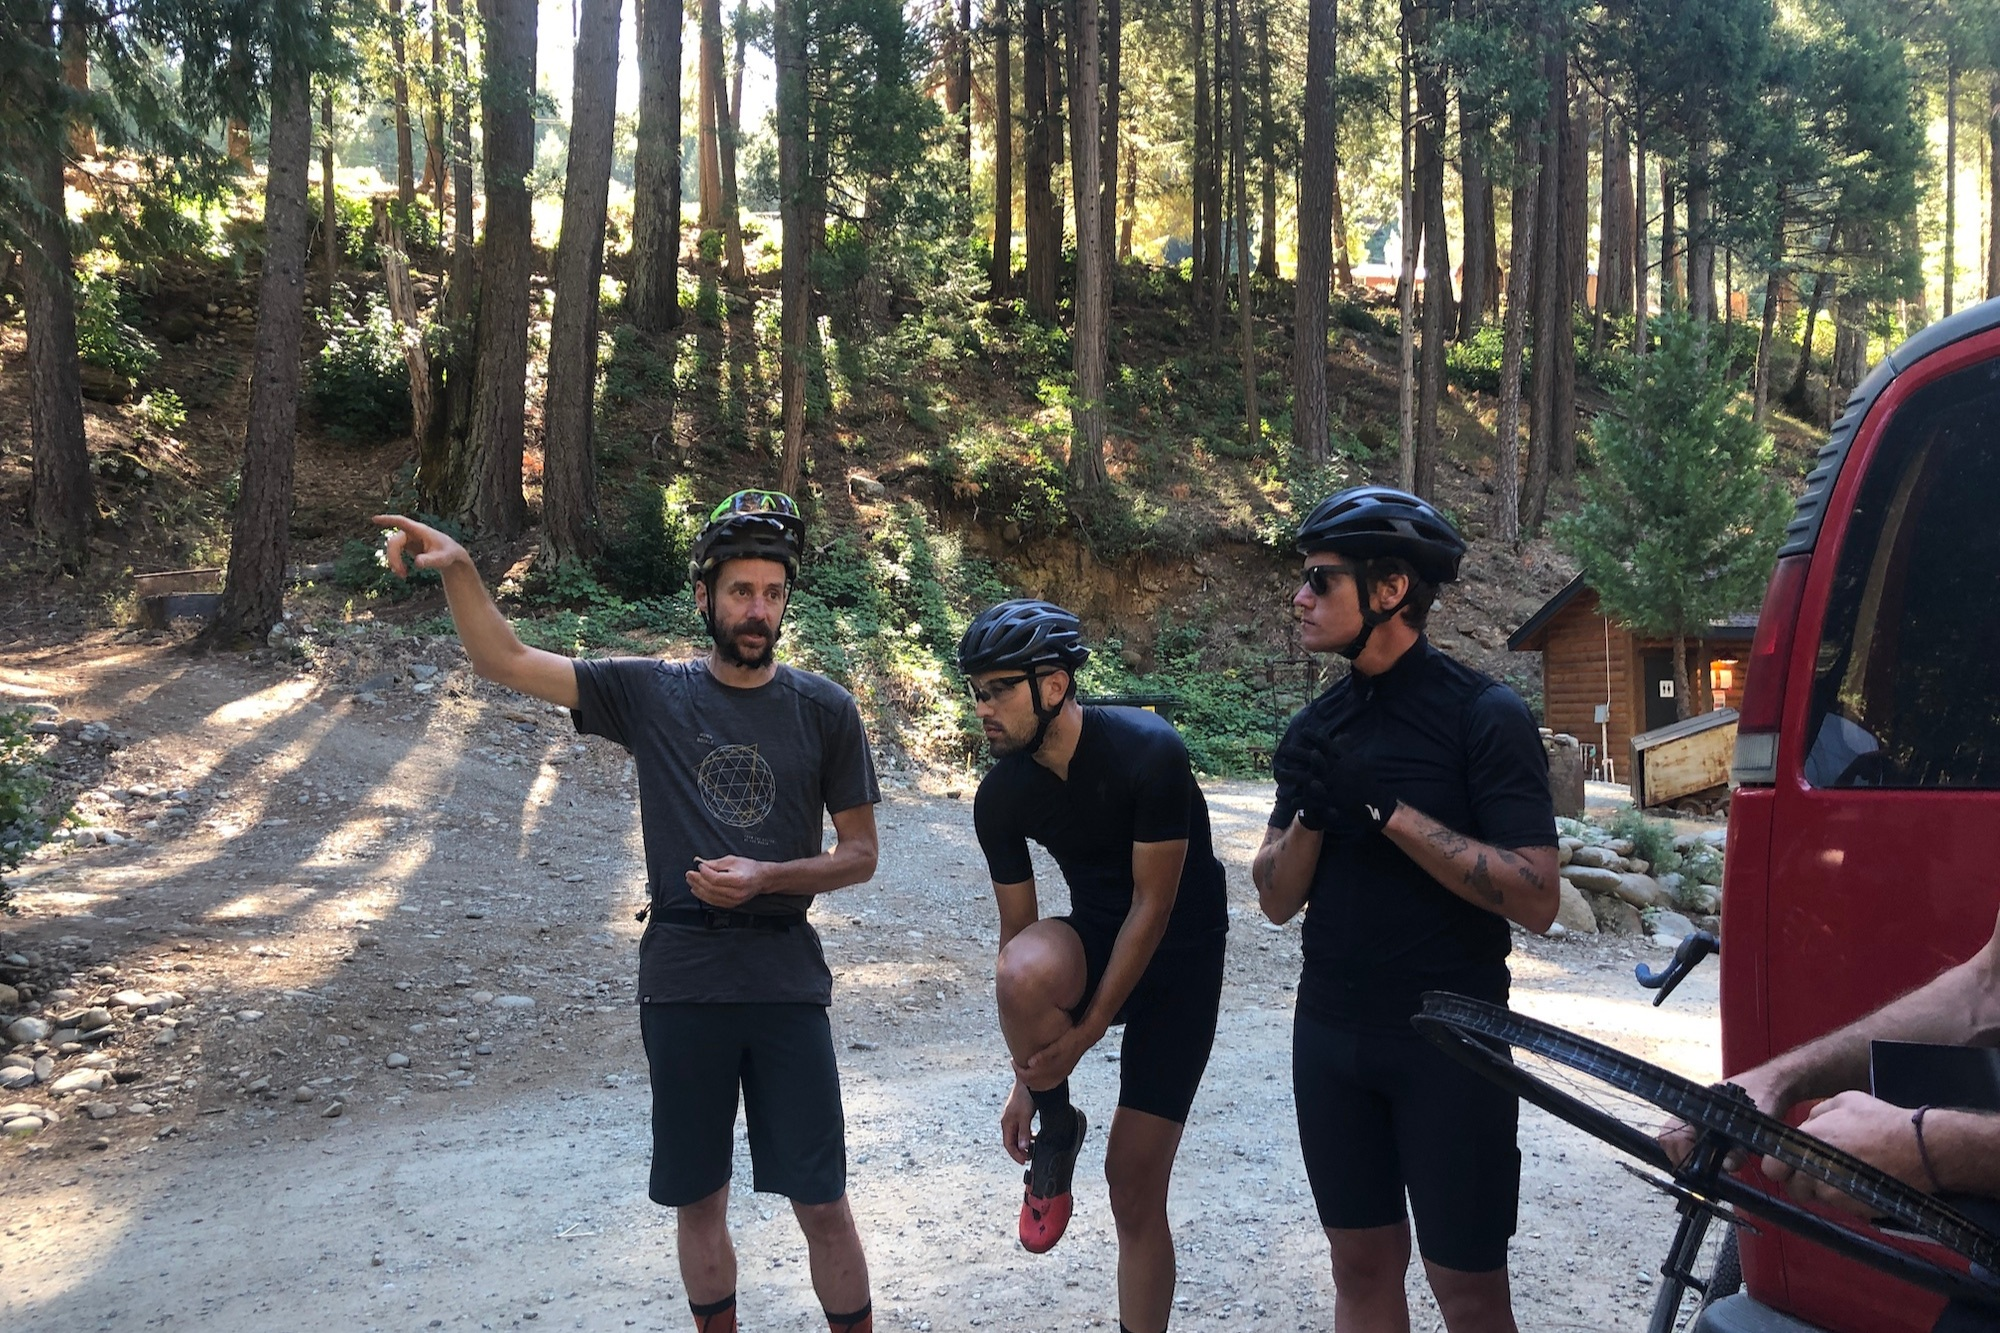 Cameron Falconer, a local rider and established framebuilder, gives the crew details on the planned route.